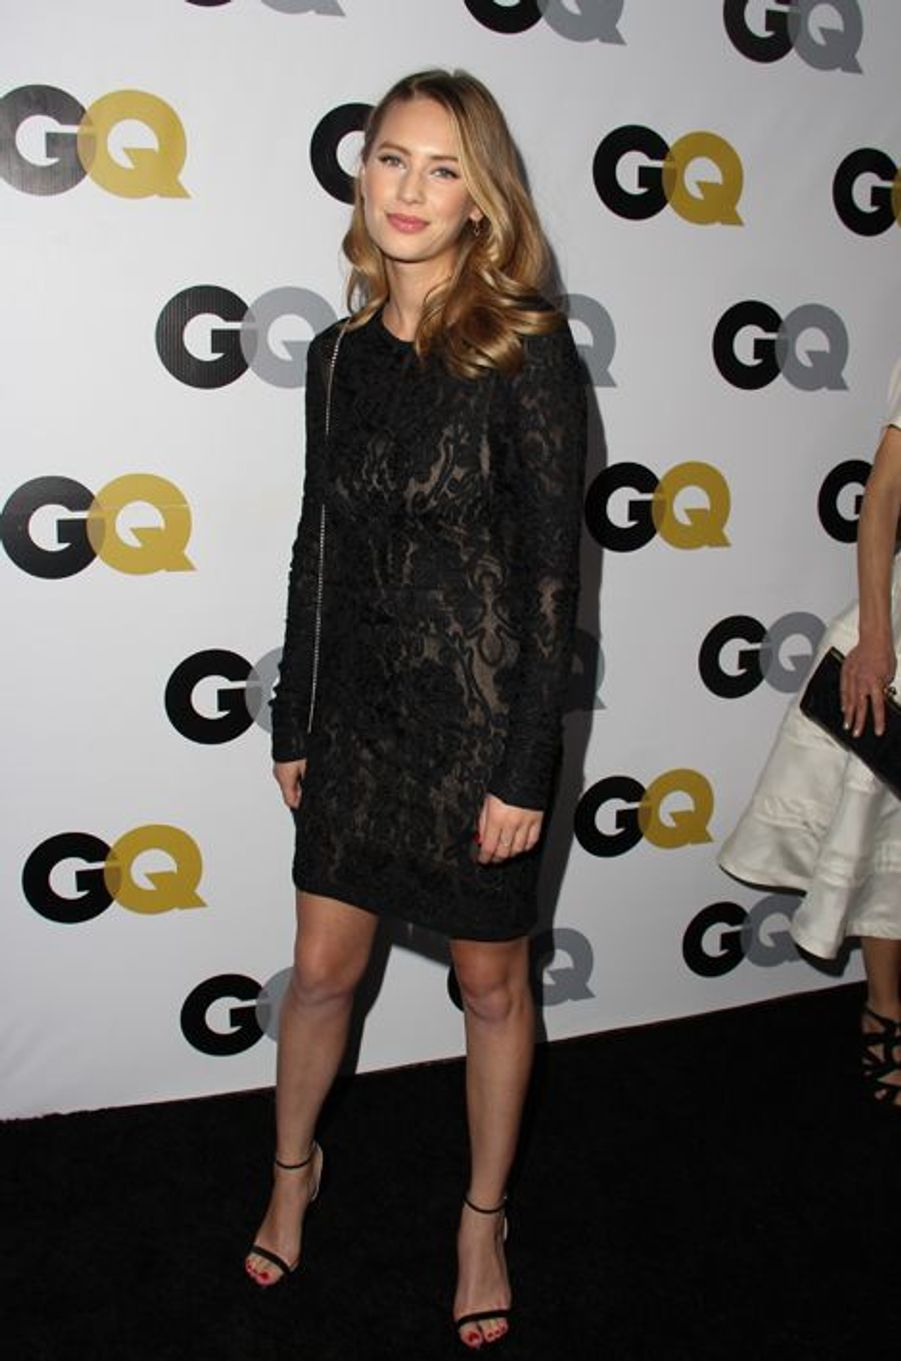 En novembre 2013 aux GQ Men of the Year Awards